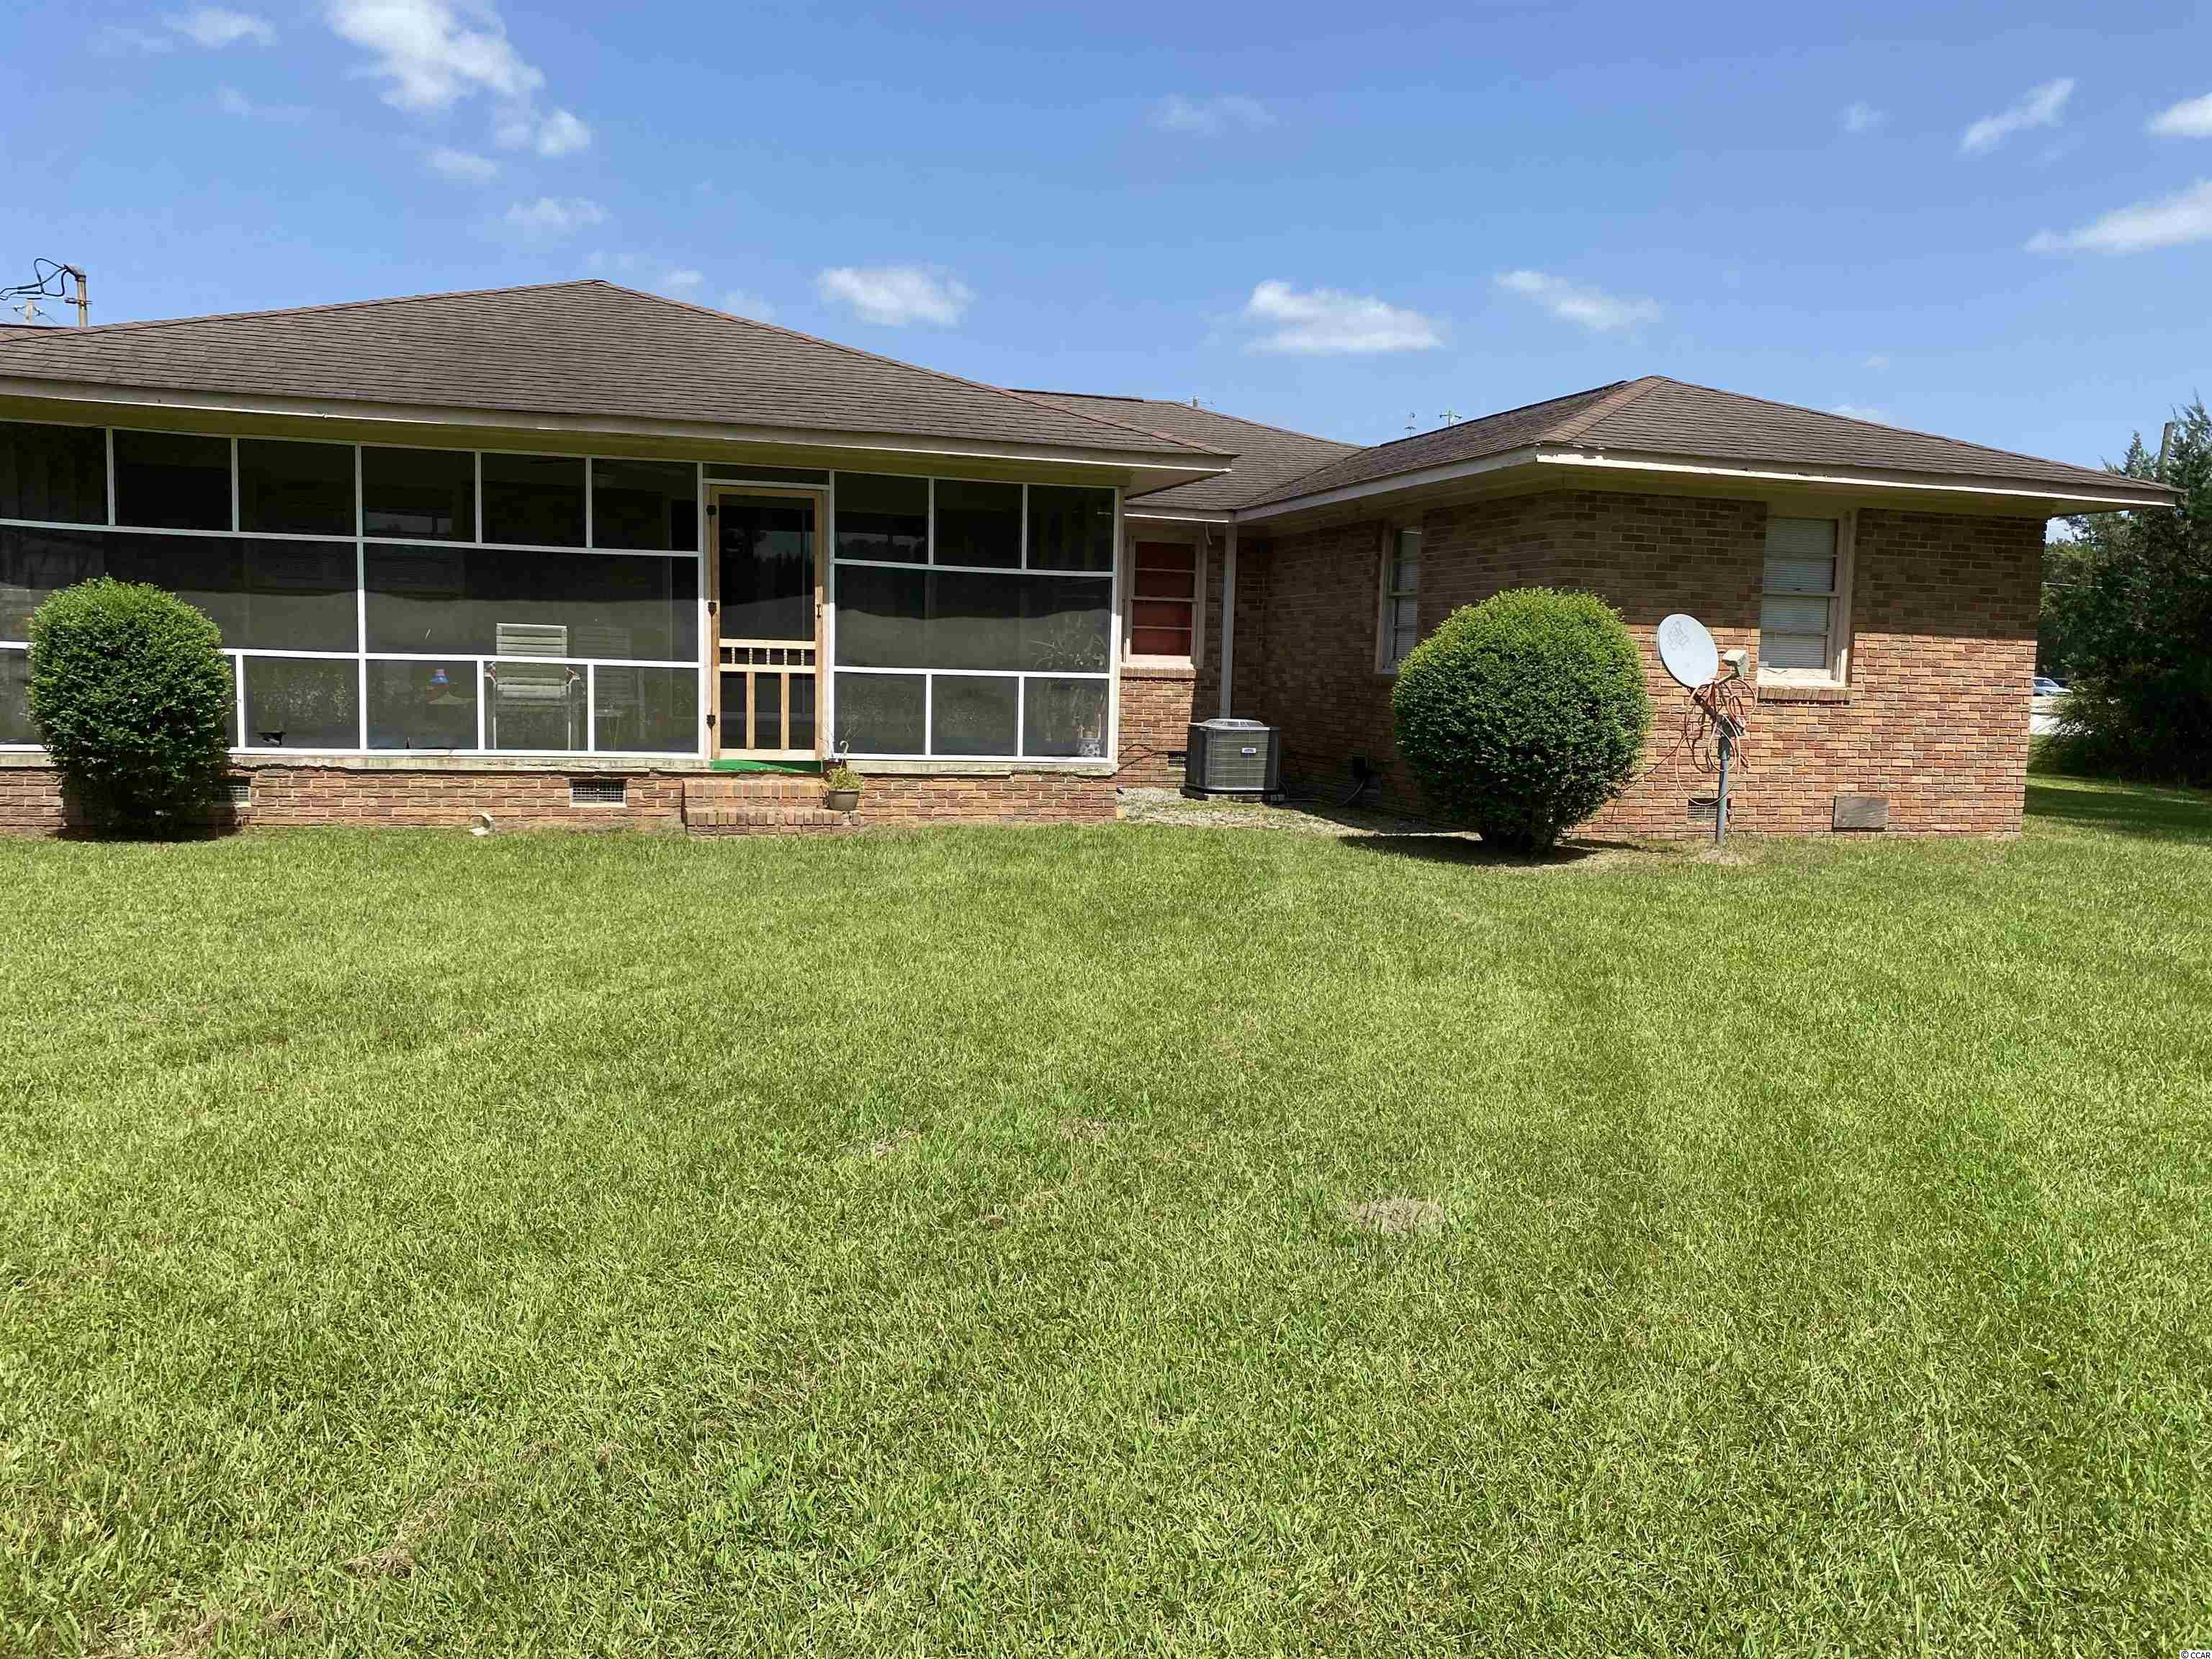 Country living in a convenient location.  All brick home with low maintenance.  New flooring throughout.  Great rental potential for an investment property.